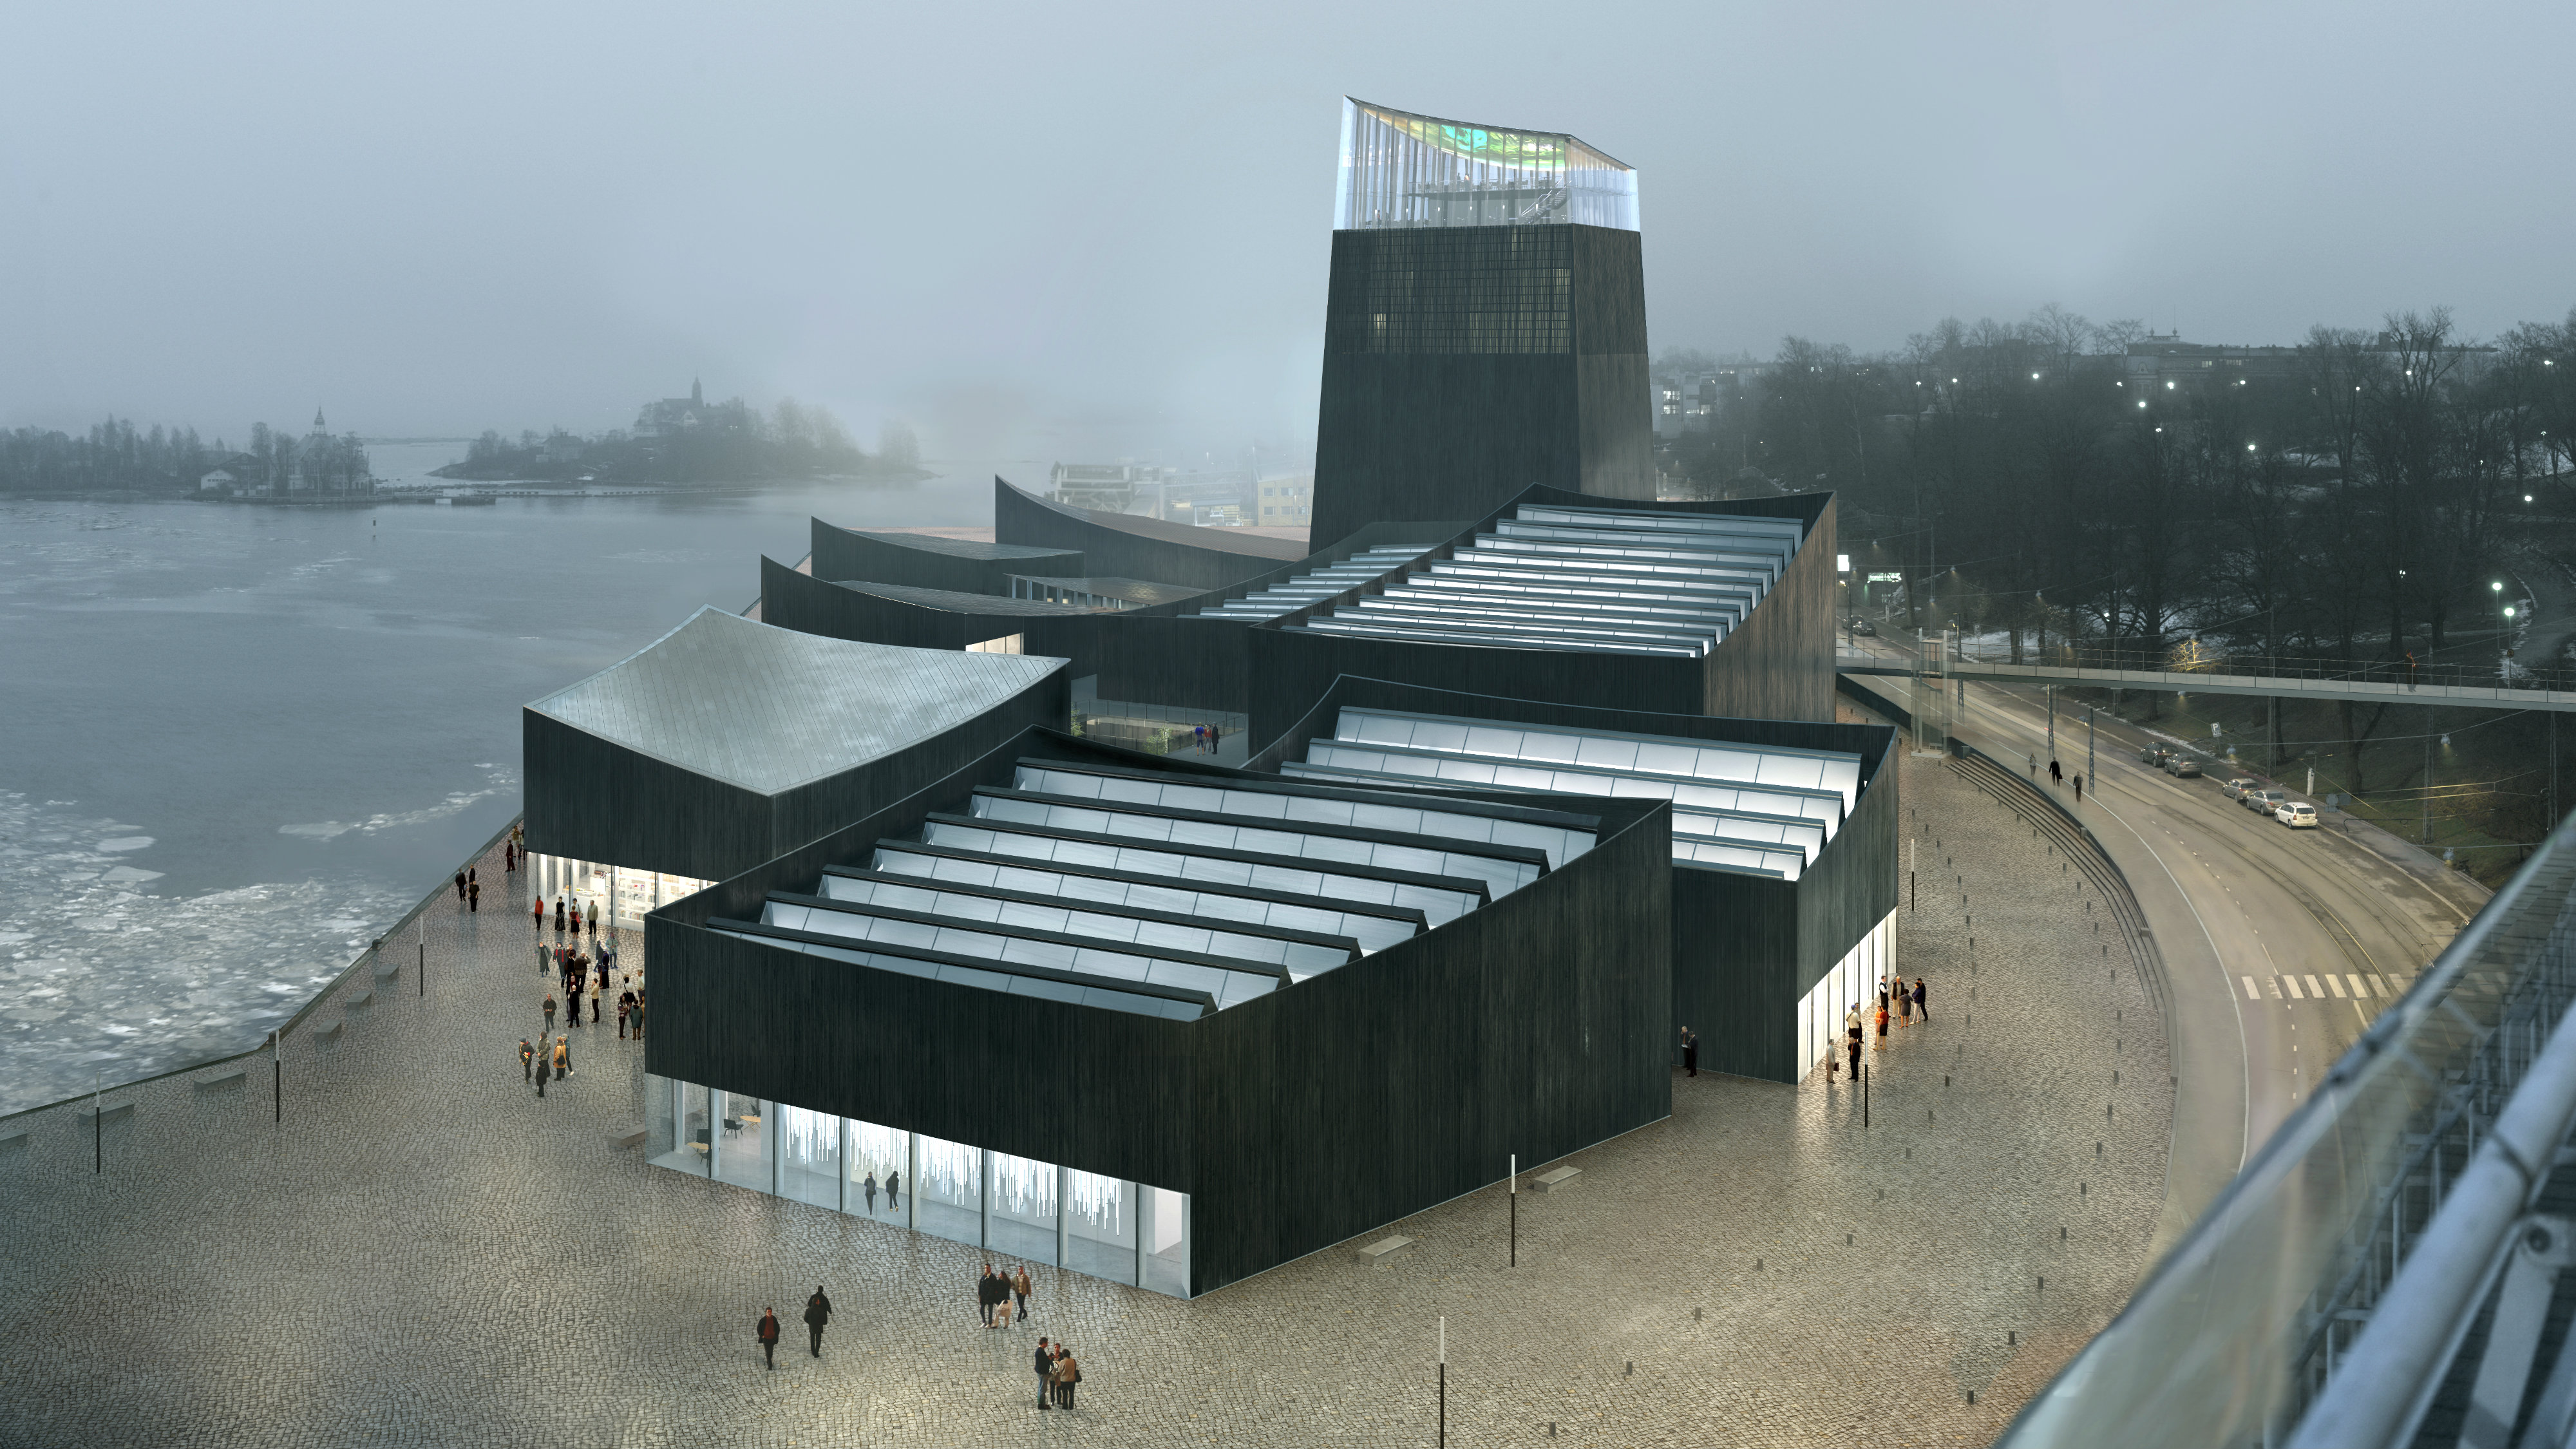 The design of Helsinki's controversial Guggenheim branch, unveiled